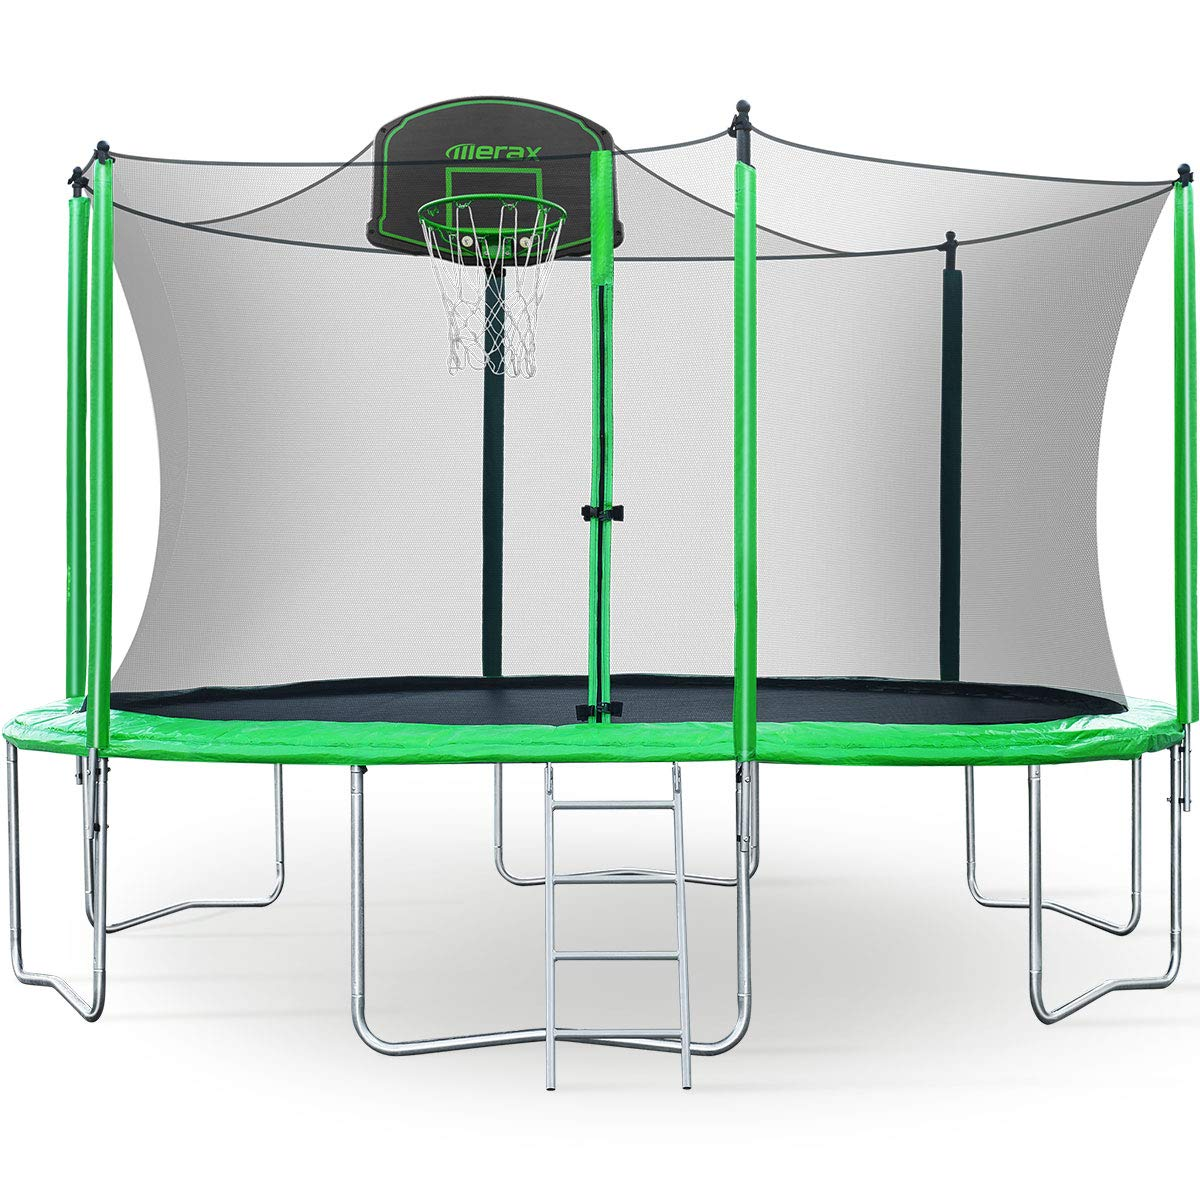 Merax 12FT Trampoline with Safety Enclosure Net, Basketball Hoop and Ladder - BV Certificated - Basketball Trampoline (12 Feet) by Merax